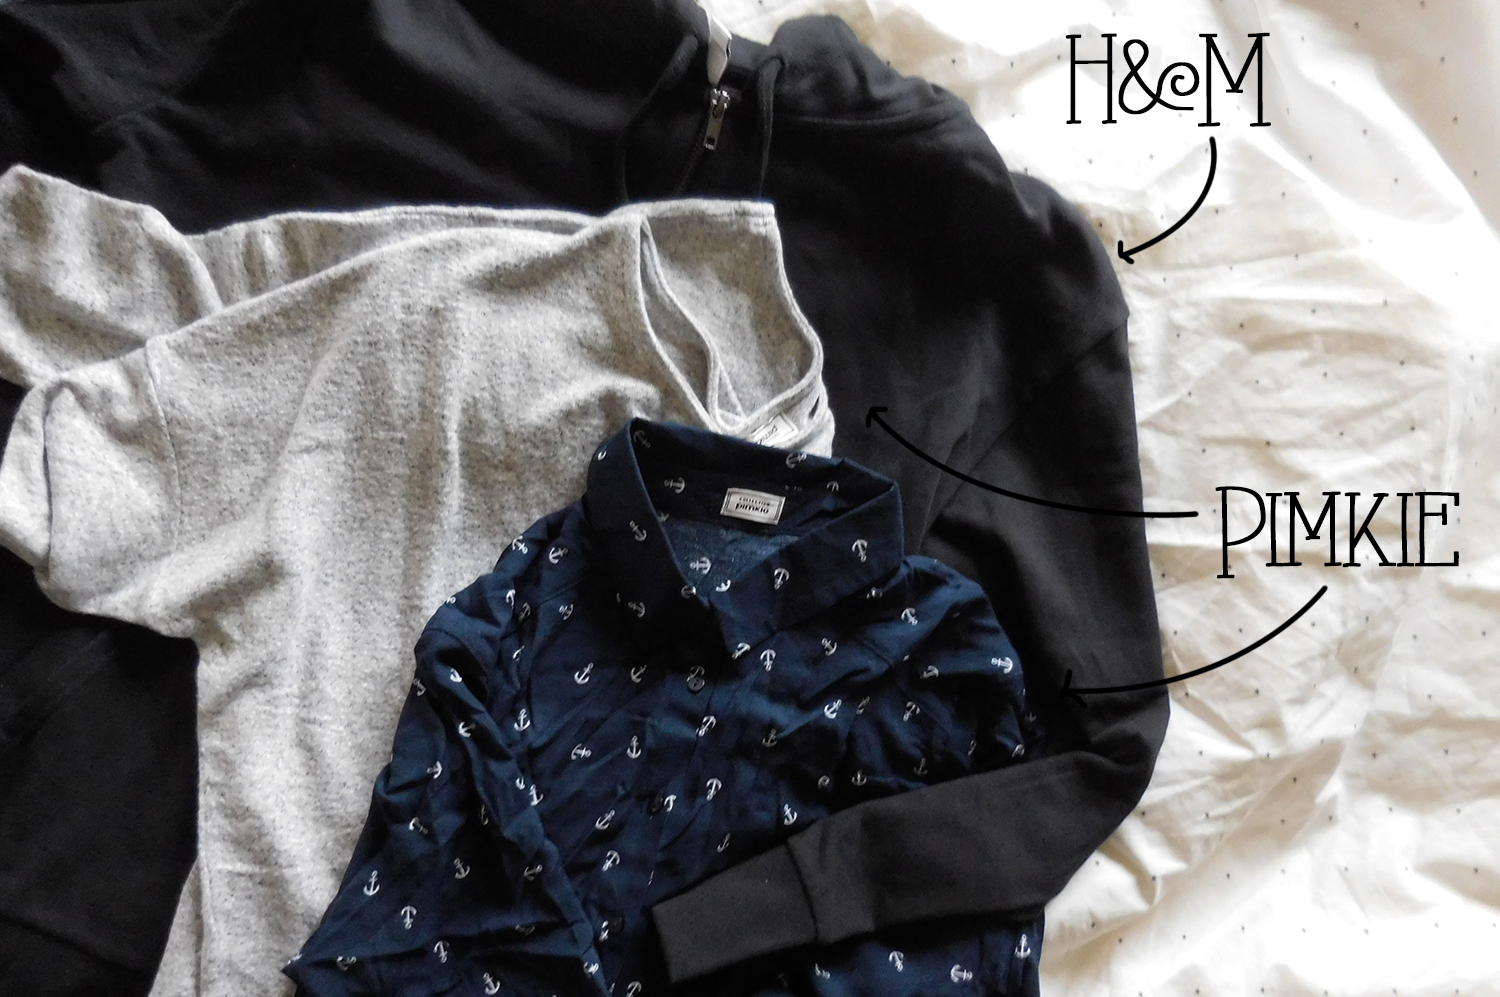 bfs: primark, h&m, pimkie - imaginary lights